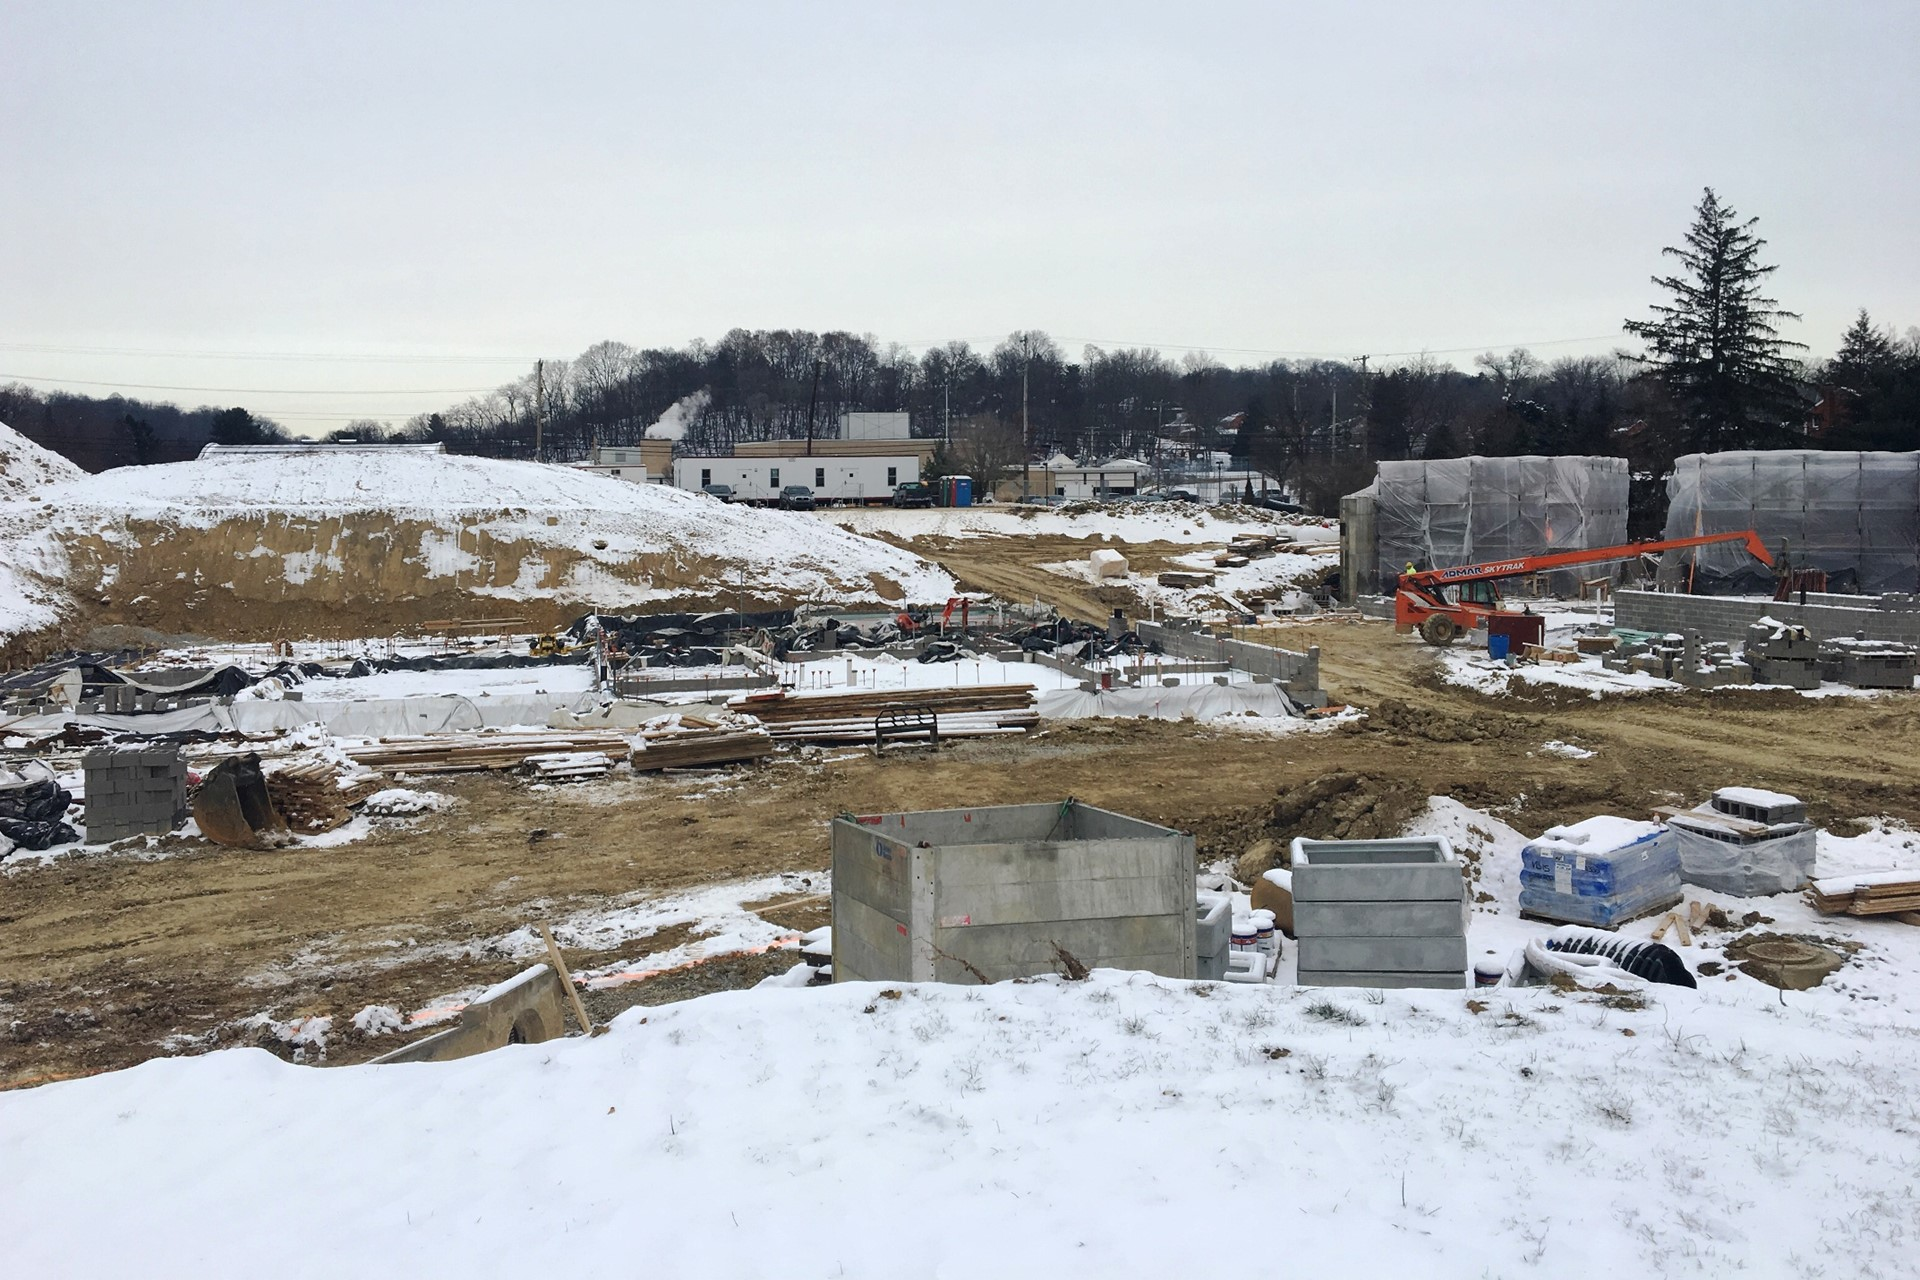 New school construction site